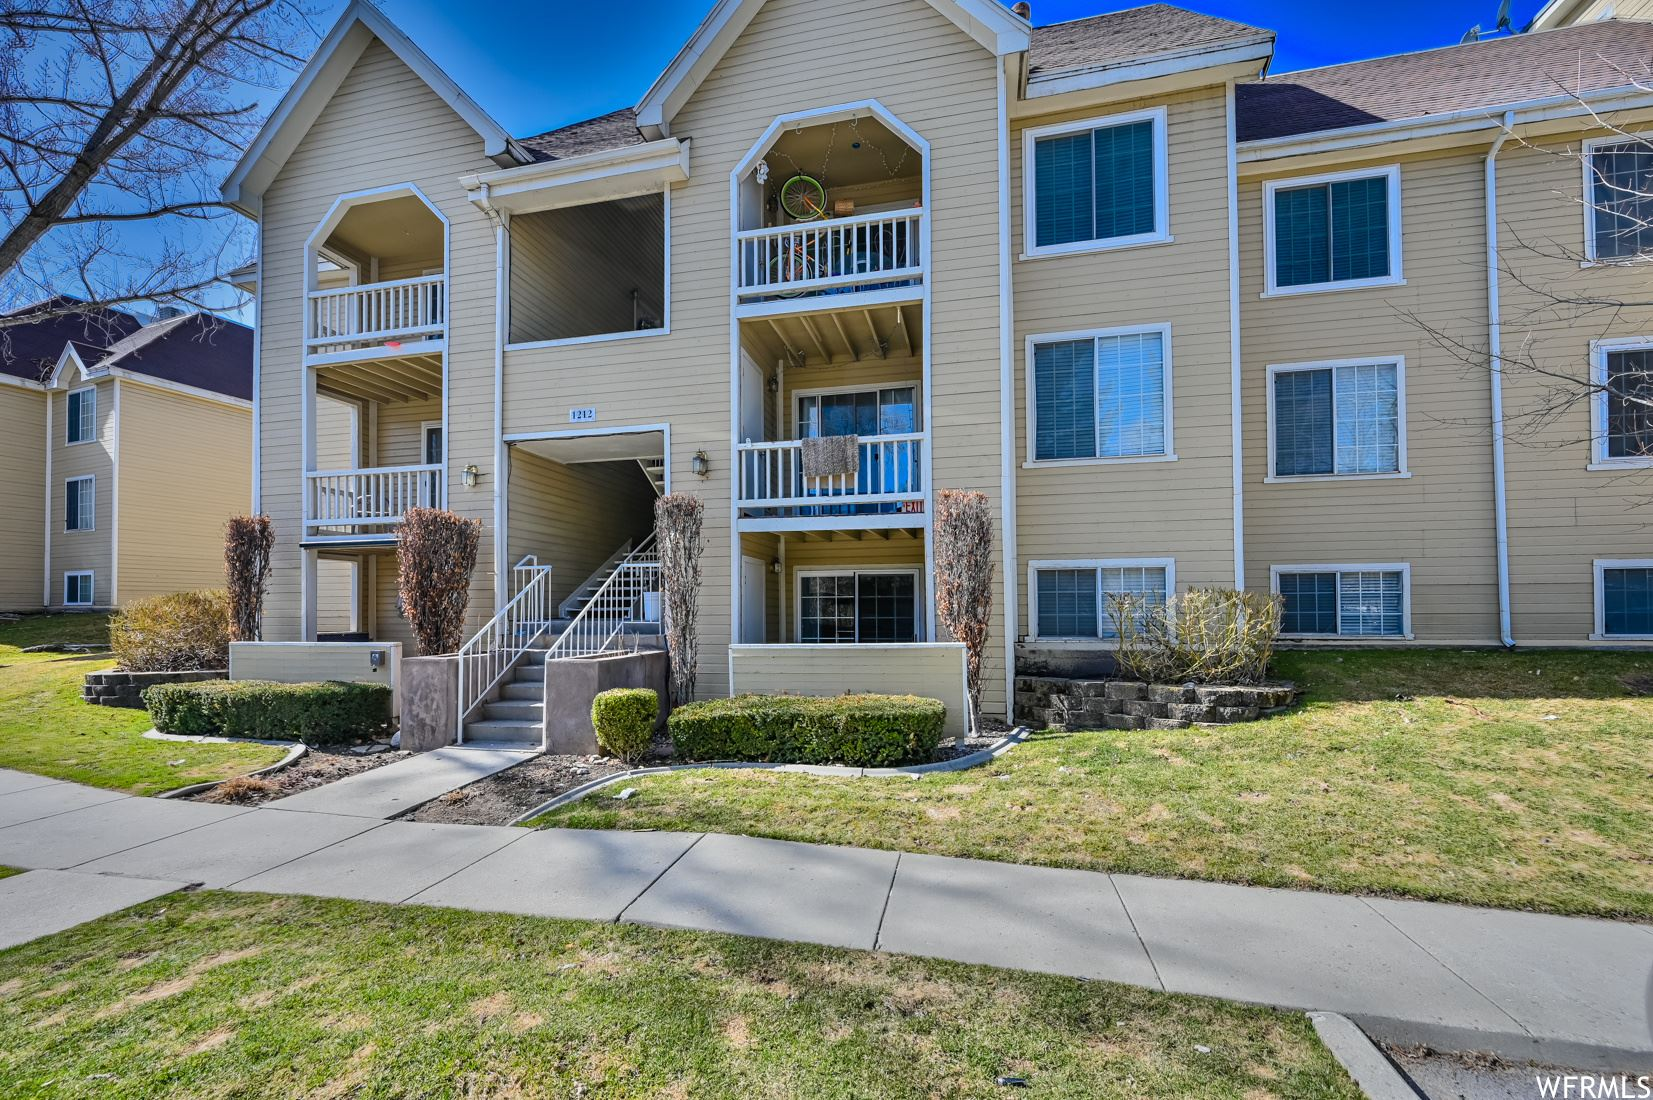 Photo of 1212 E WATERSIDE COVE CV #33, Cottonwood Heights, UT 84047 (MLS # 1731682)